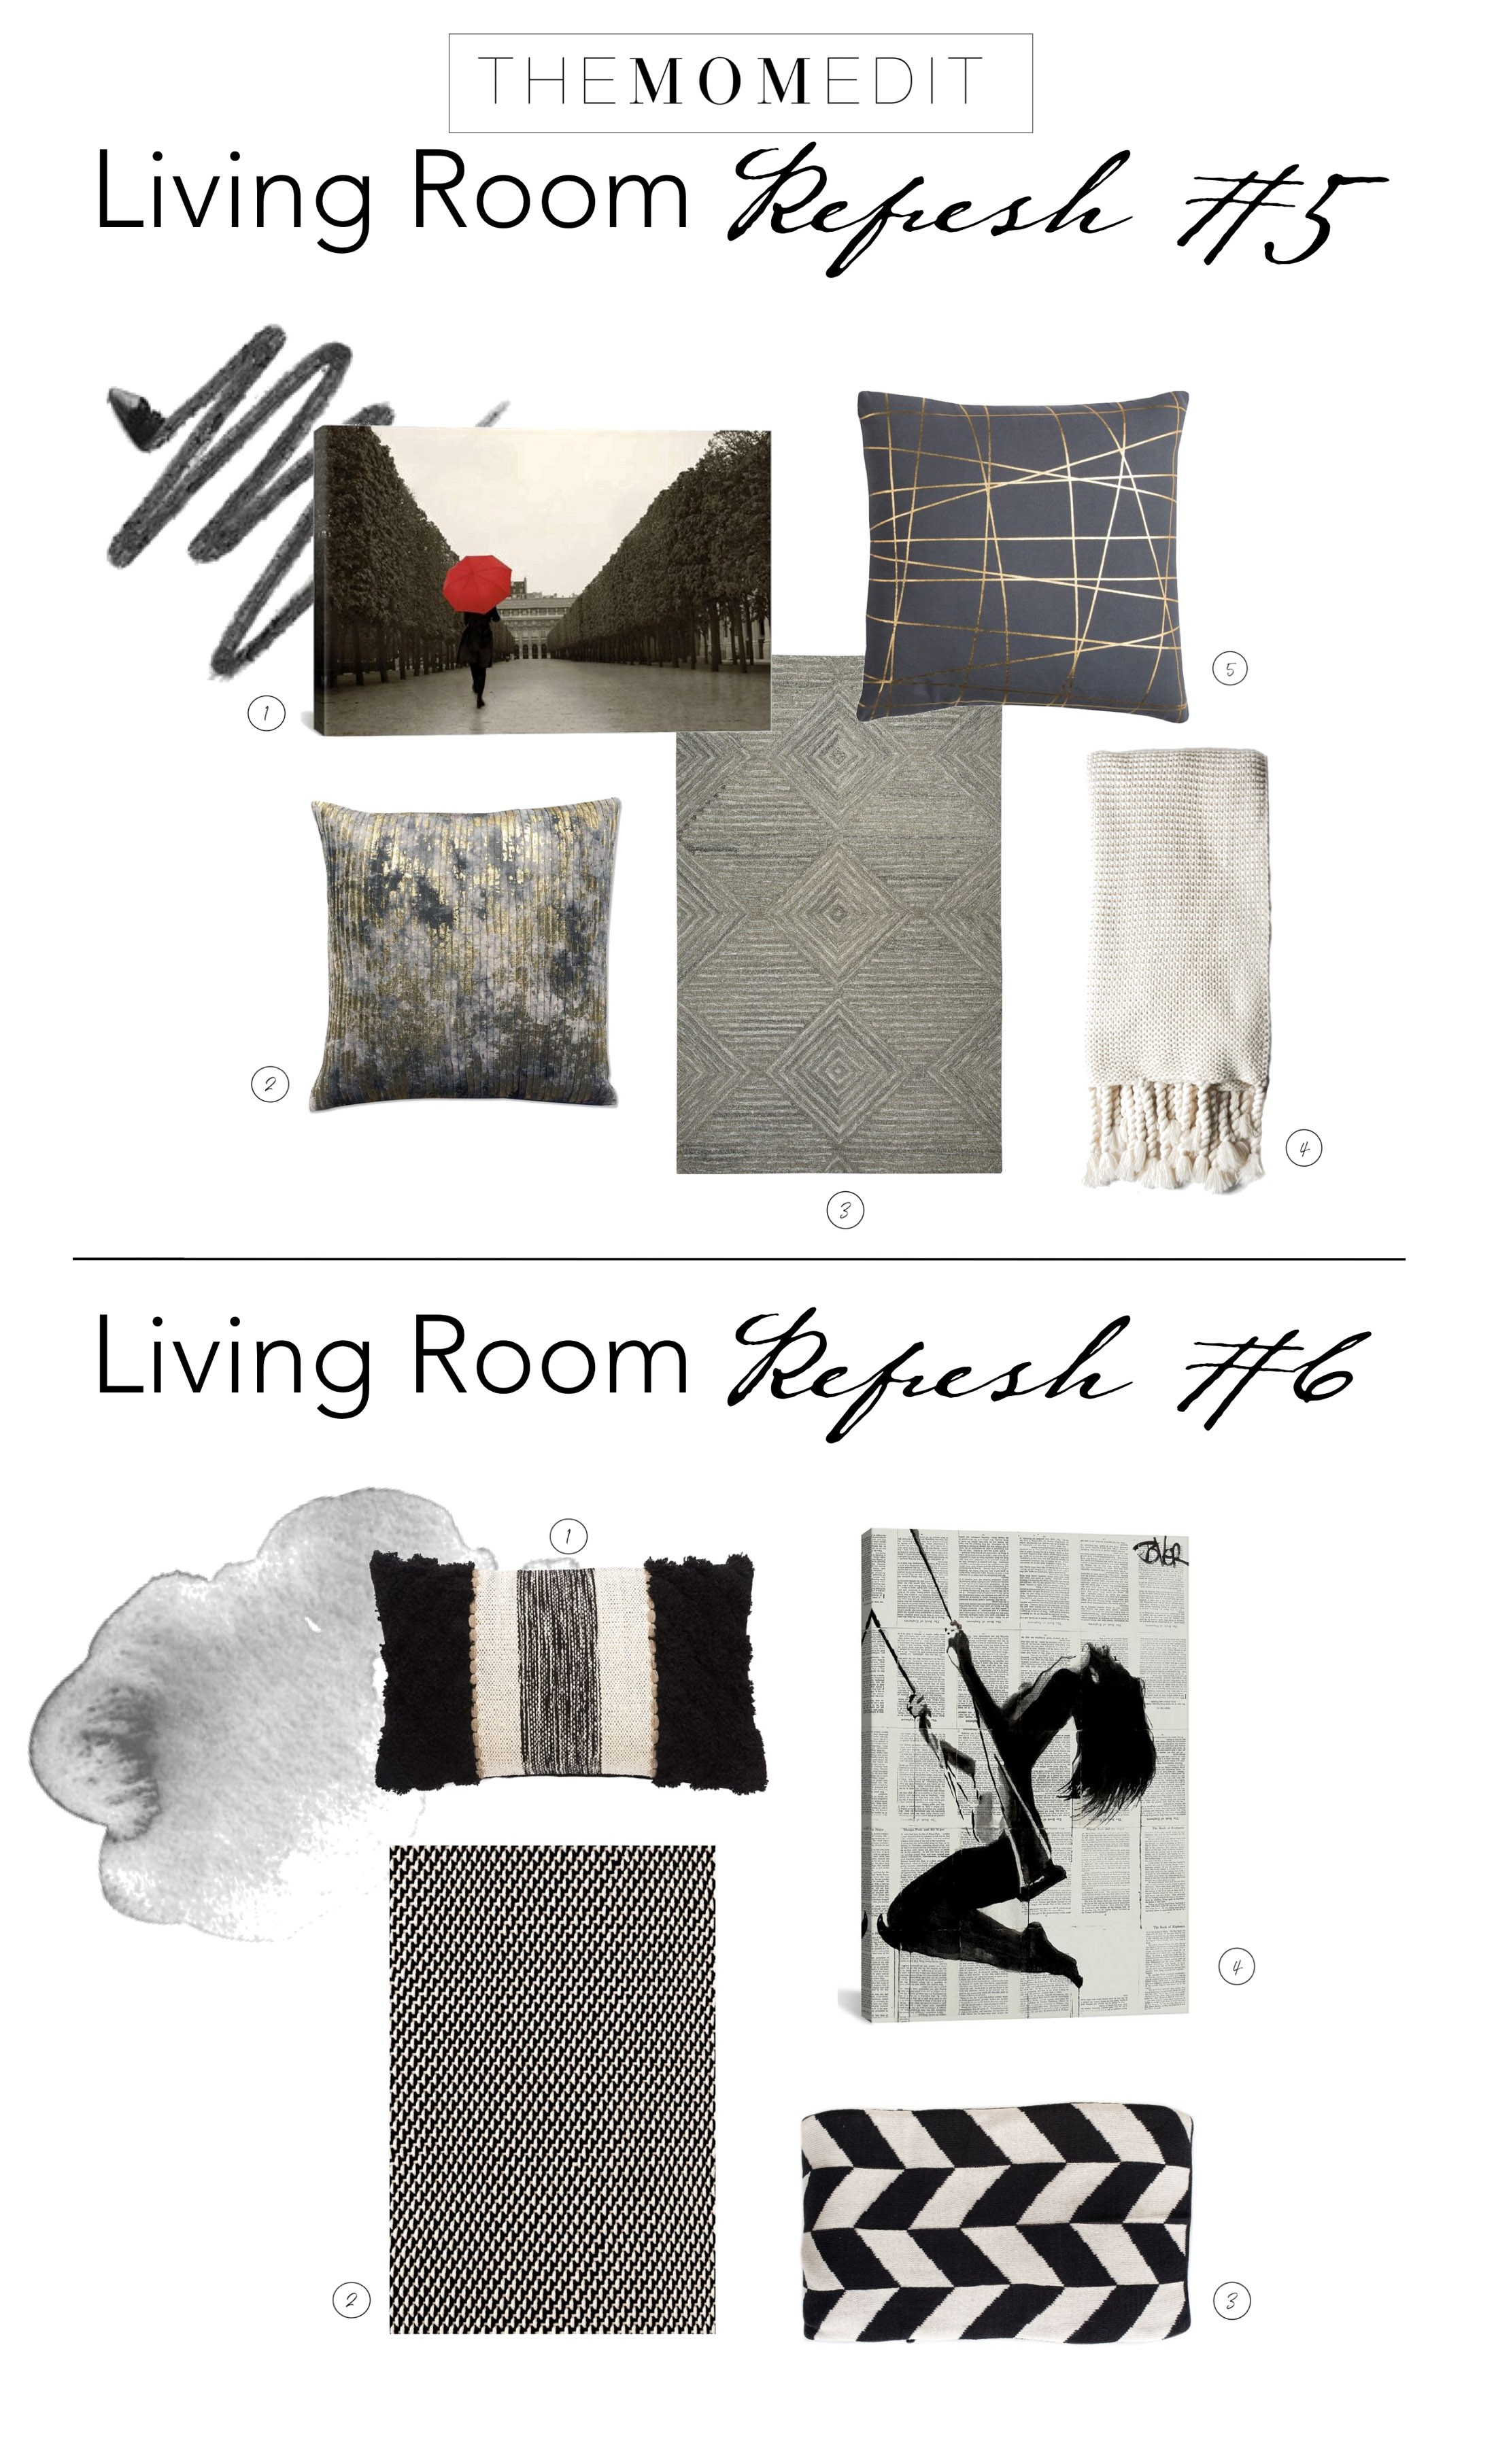 4 Things You Need To pletely Refresh Your Living Room The Mom